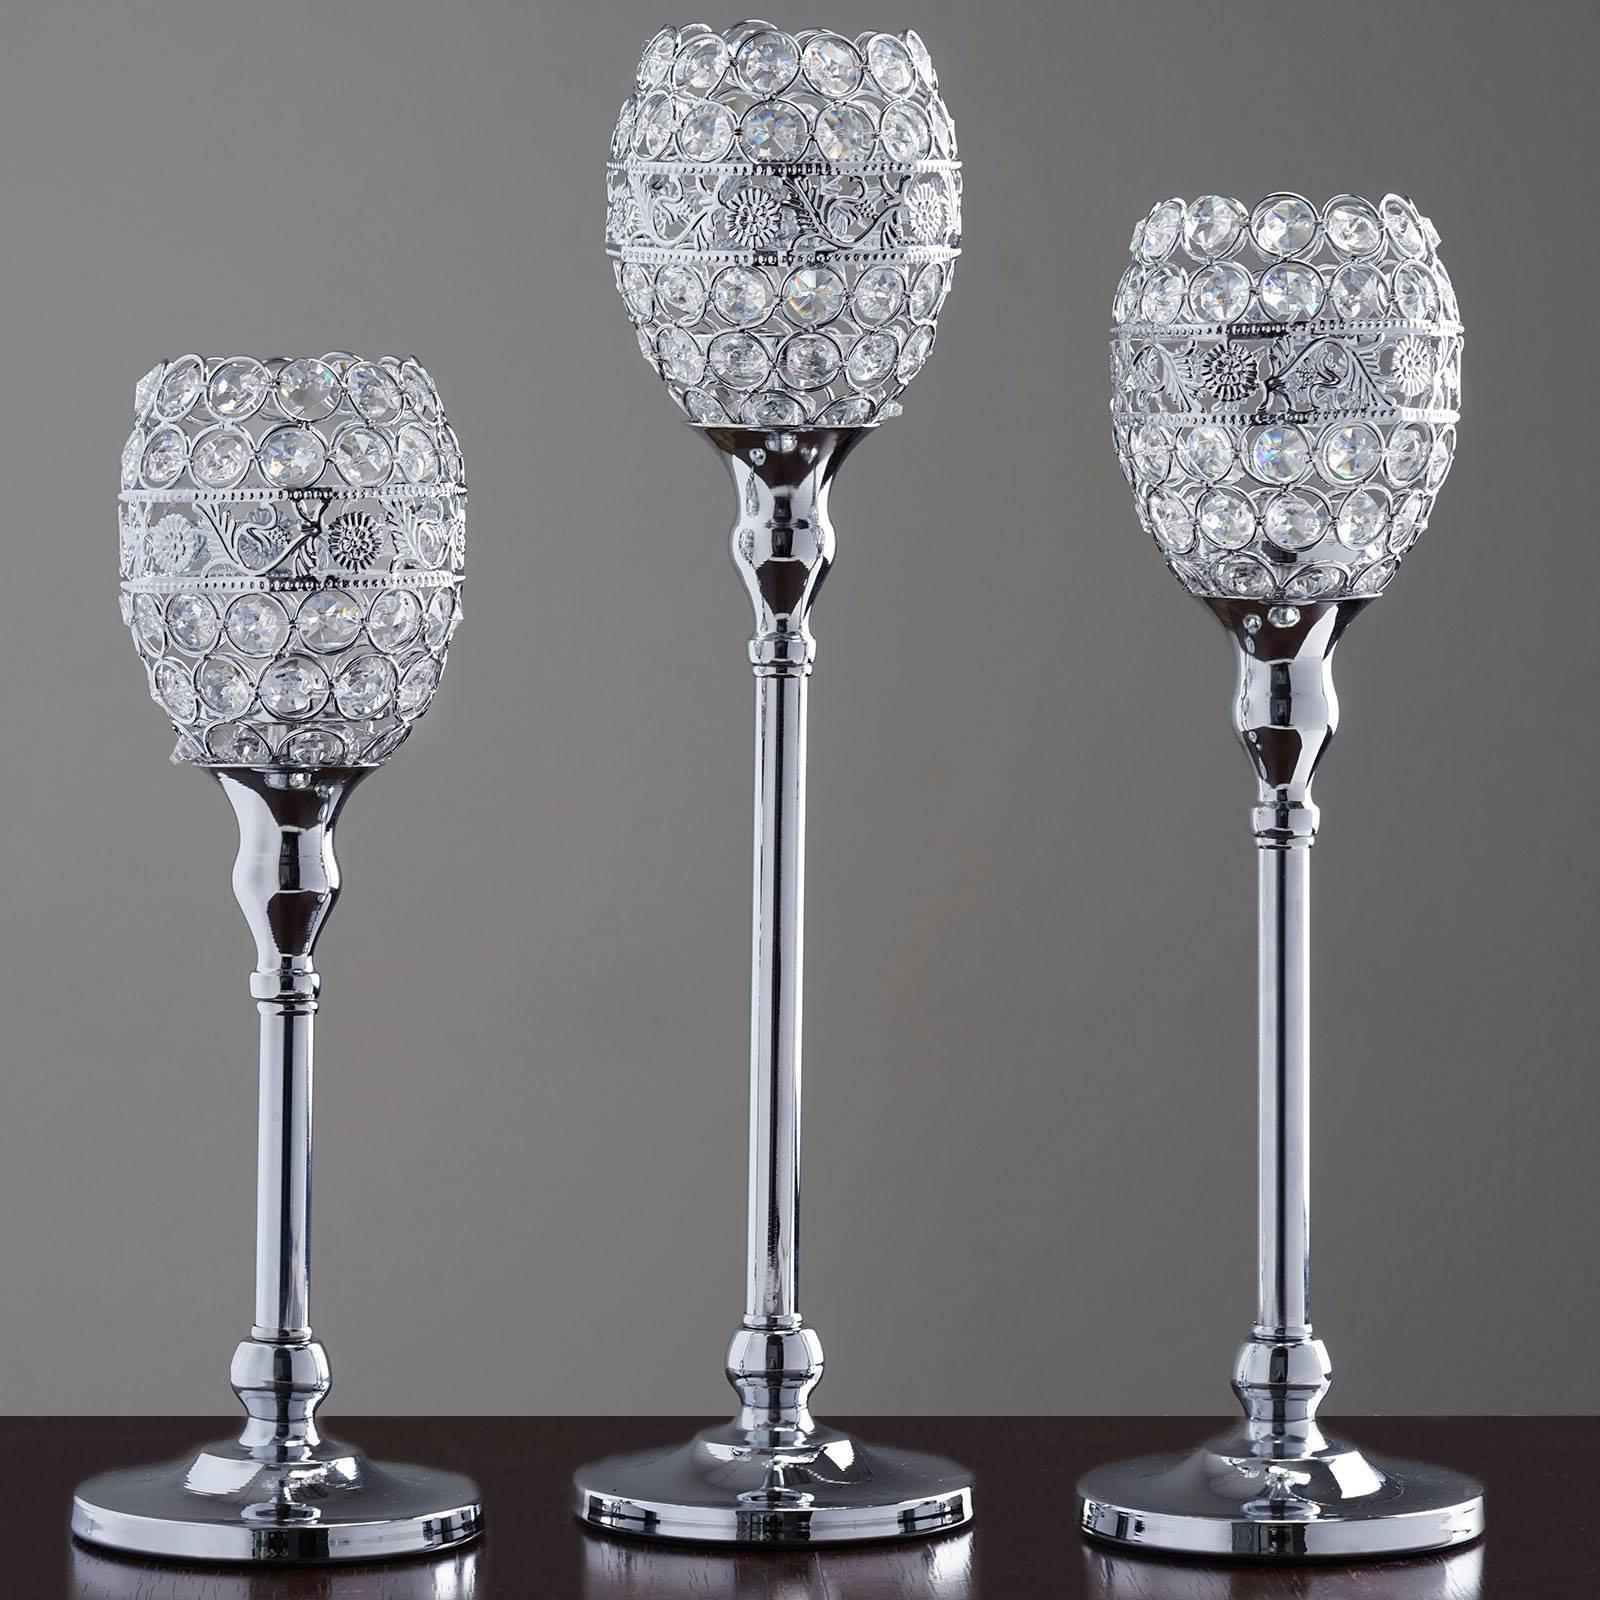 14 tall crystal beaded candle holder goblet votive tealight 14 tall crystal beaded candle holder goblet votive tealight wedding chandelier centerpiece silver buy one get one free arubaitofo Choice Image